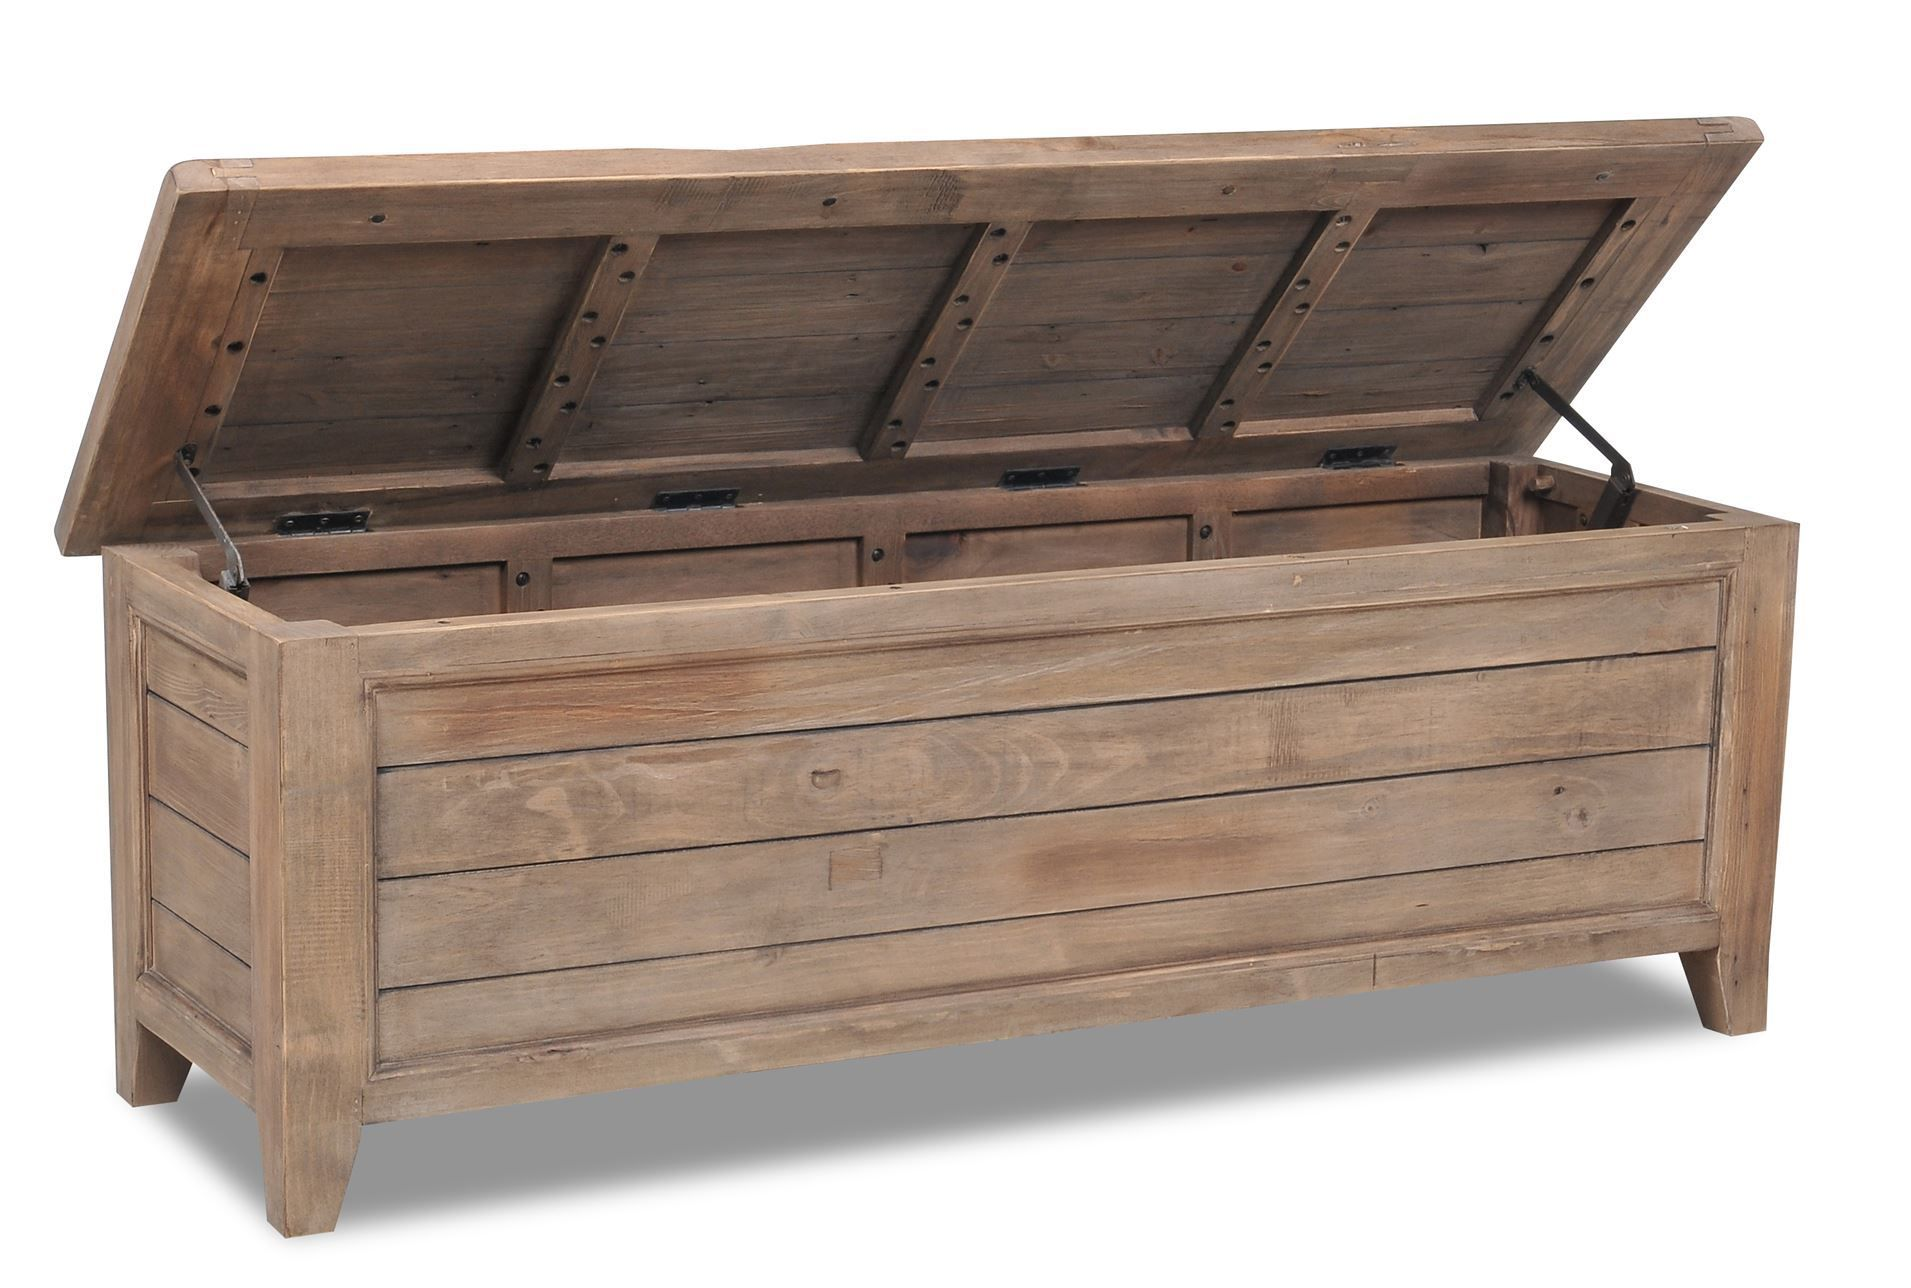 Everest Blanket Chest Bench With Storage Bedroom Bench Blanket Storage